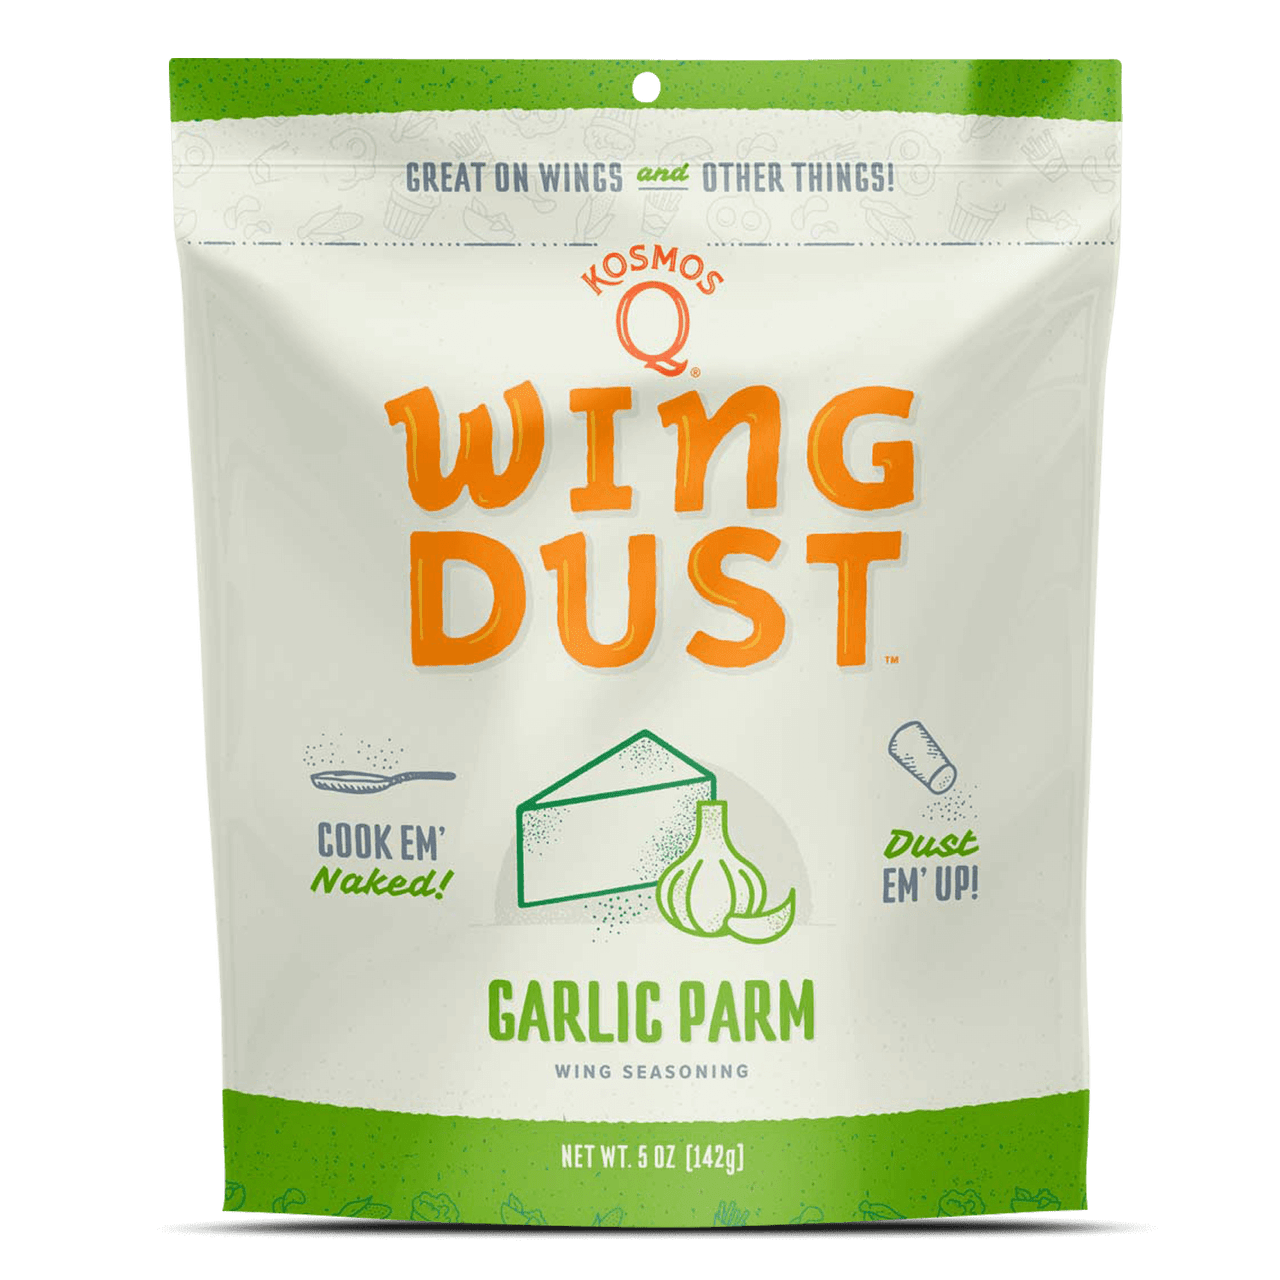 KosmosQ Barbecue Wing Dust Garlic Parm